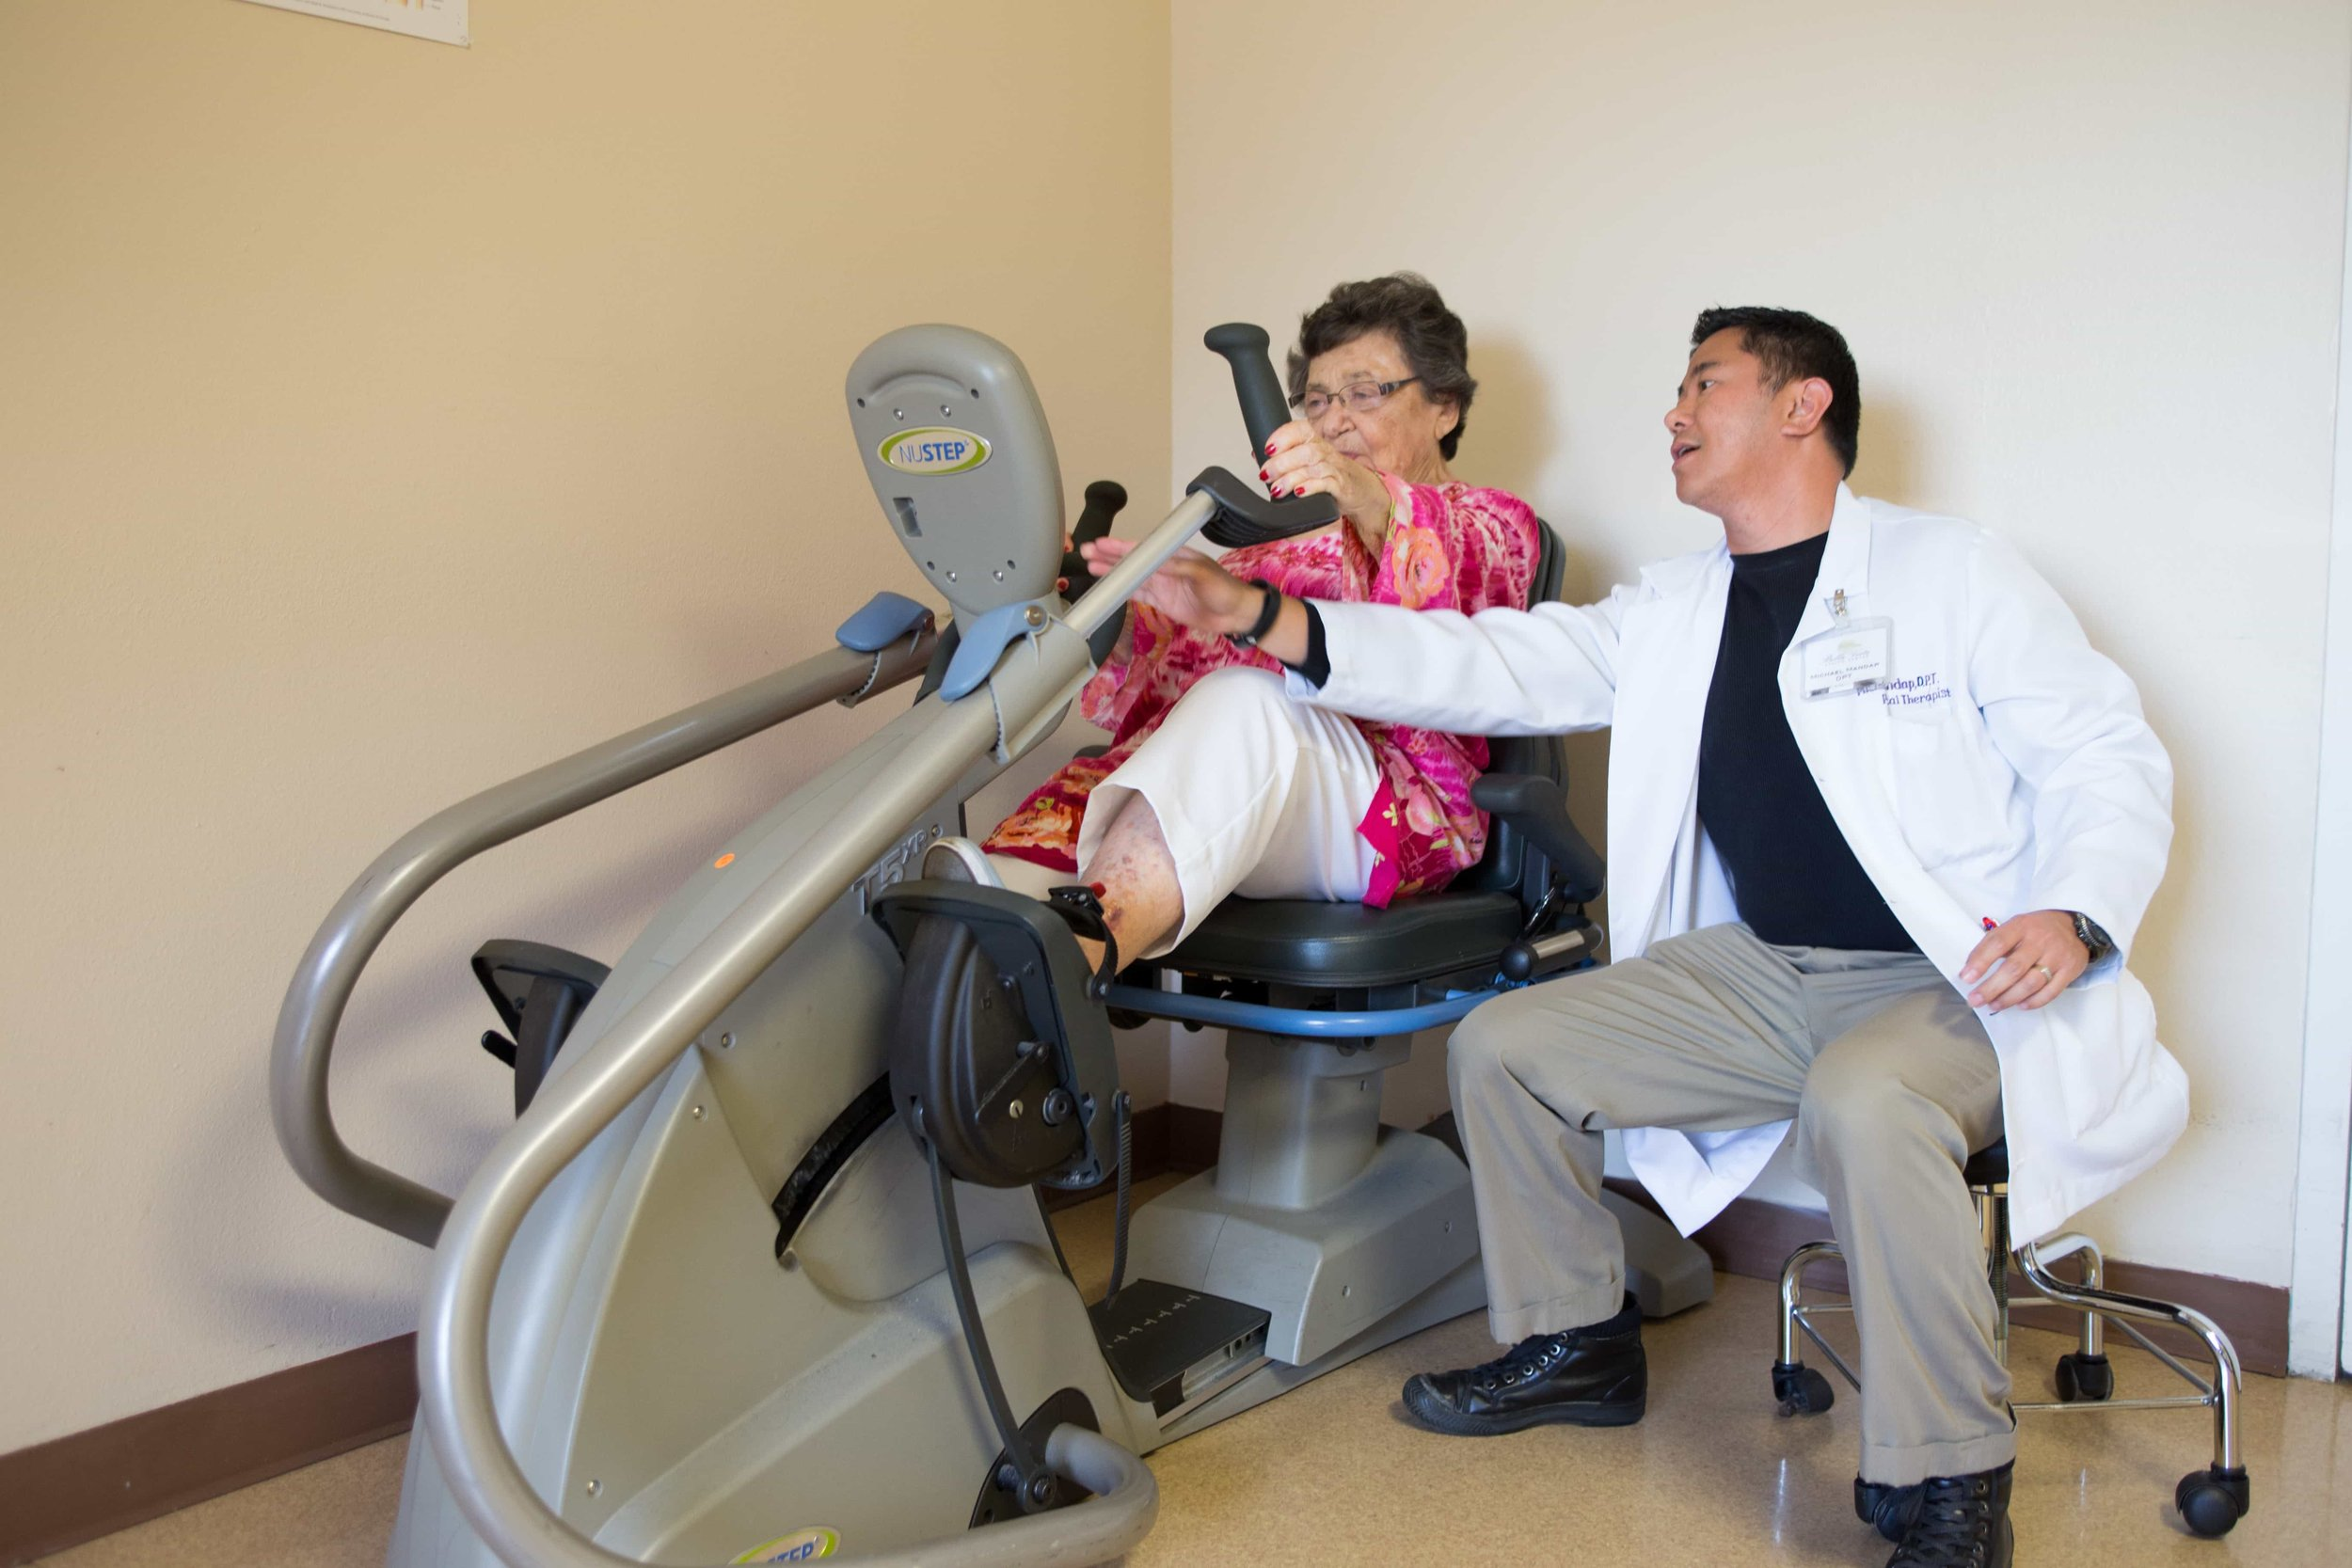 Patient working on occupational therapy activity